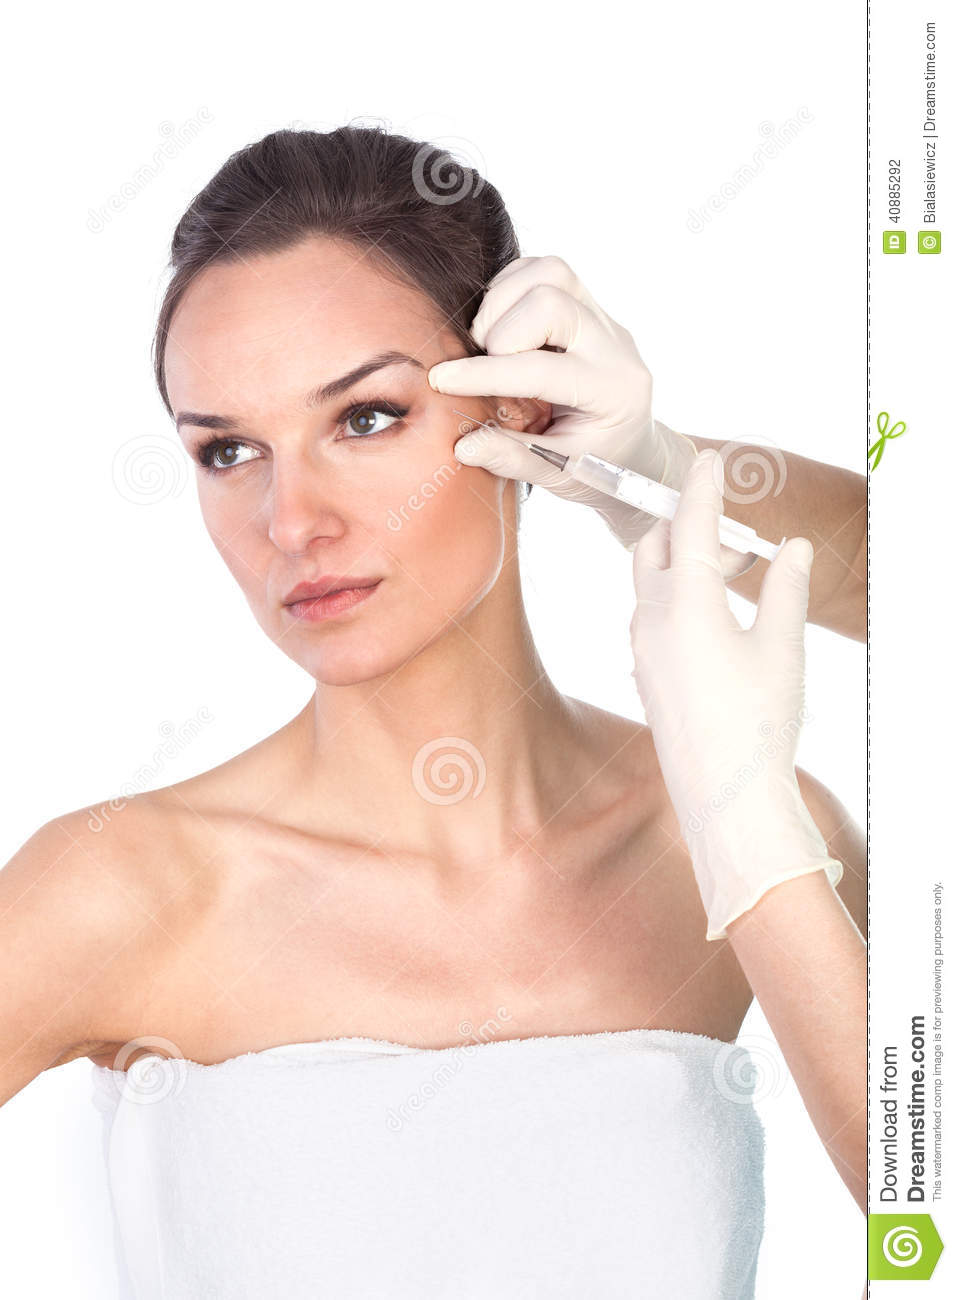 Removing wrinkles around the eyes